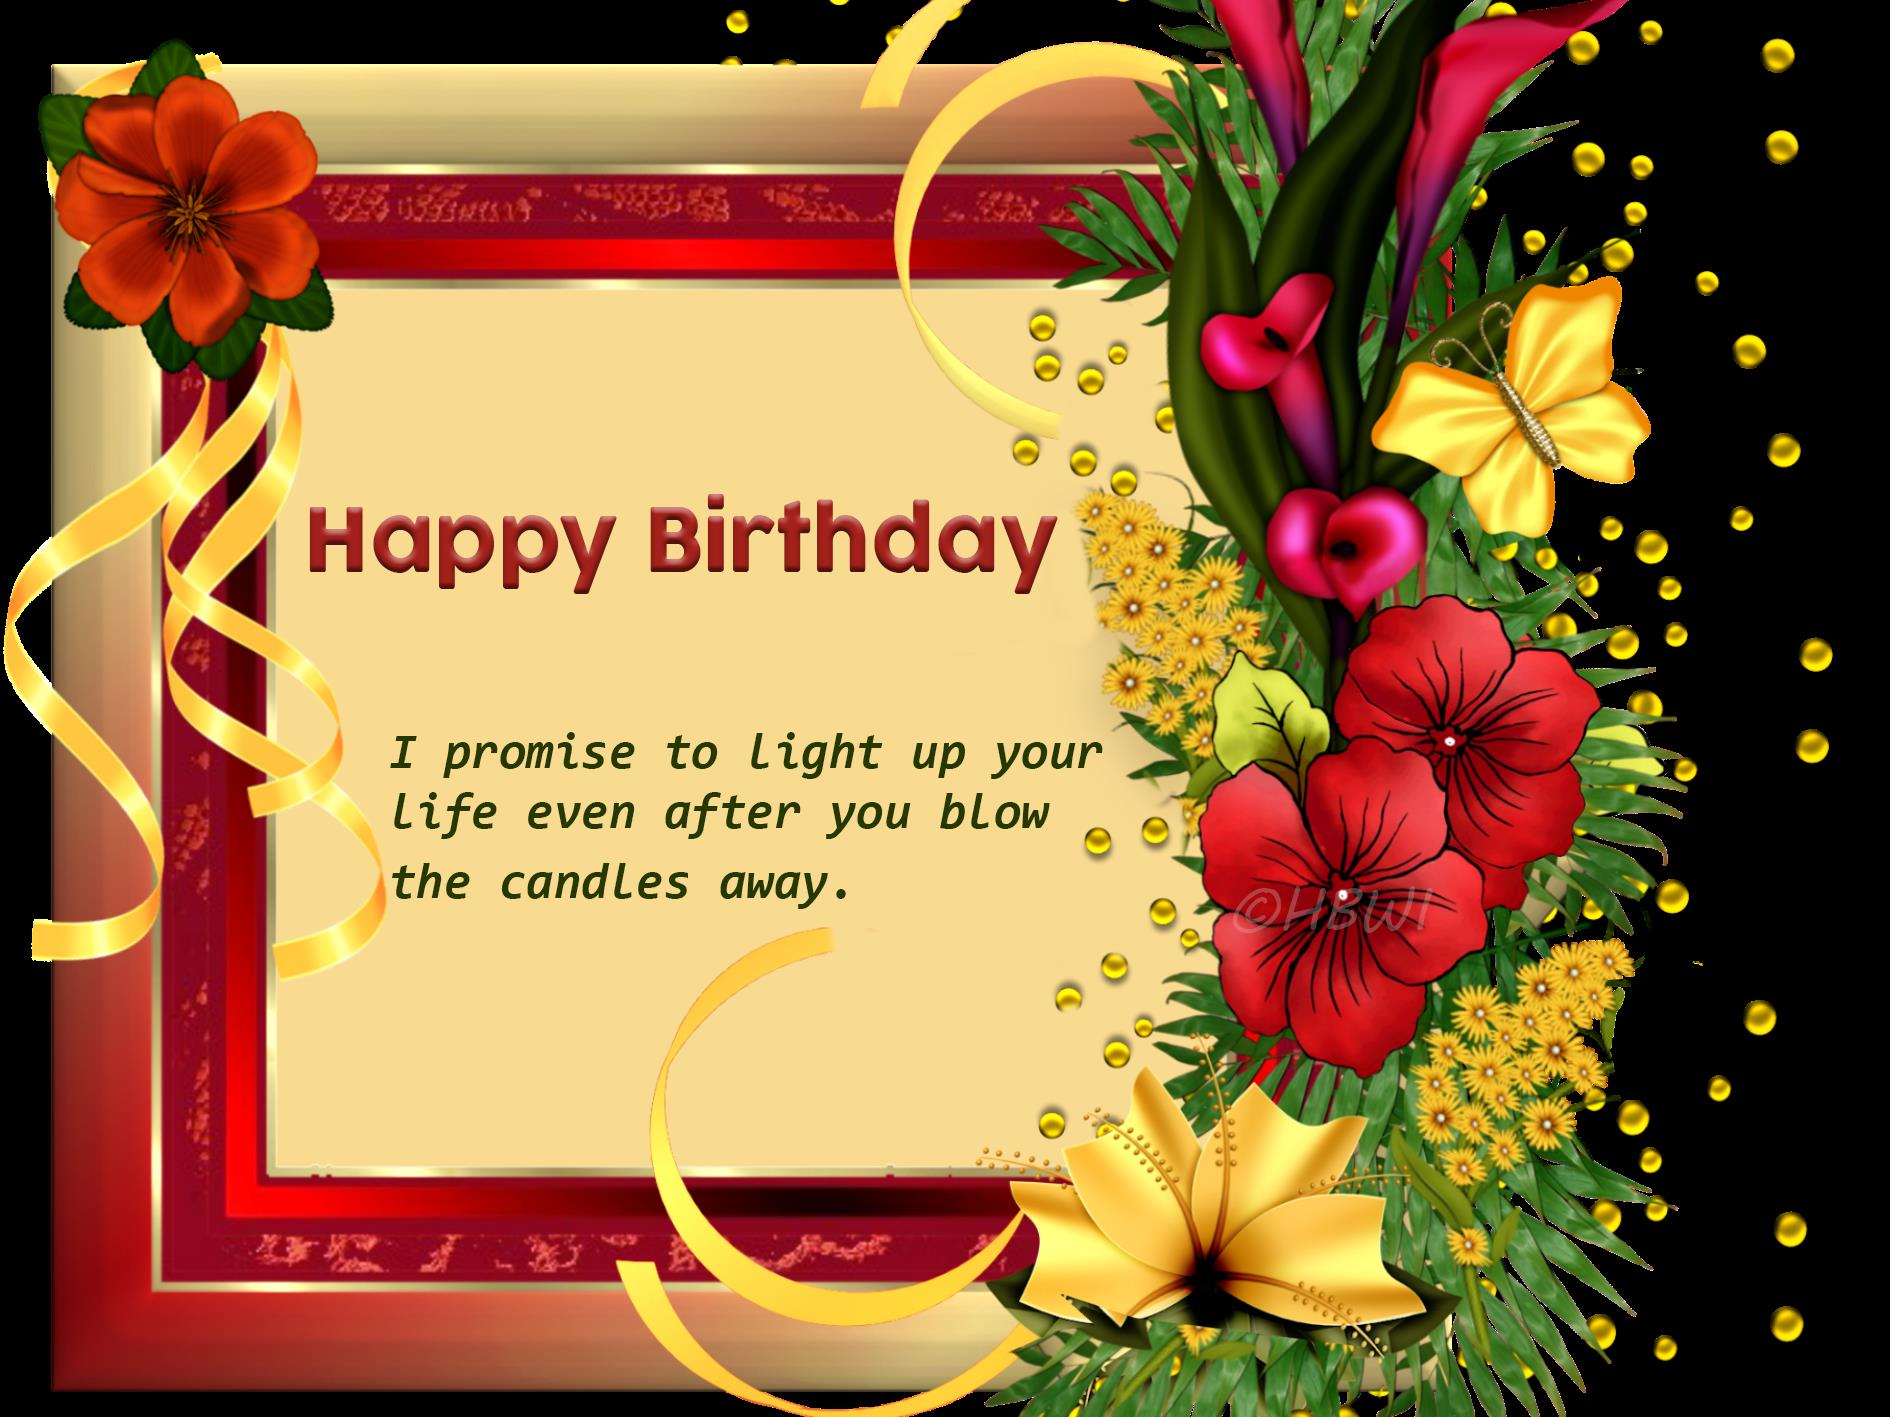 happy birthday image wishes hd ; exclusive-Happy-birthday-wishes-cards-with-flowers